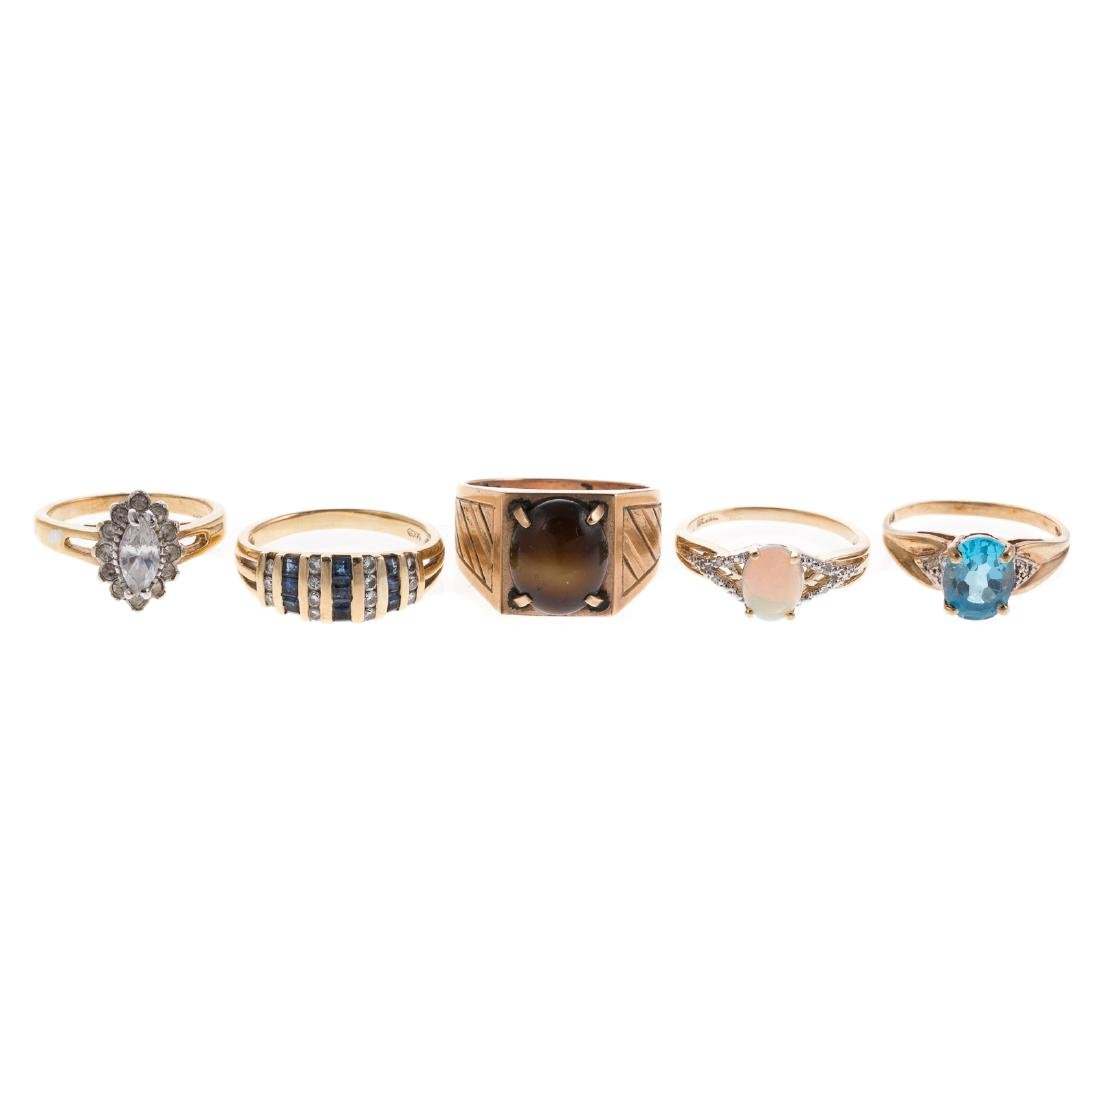 A Collection of Ladies Gemstone Jewelry